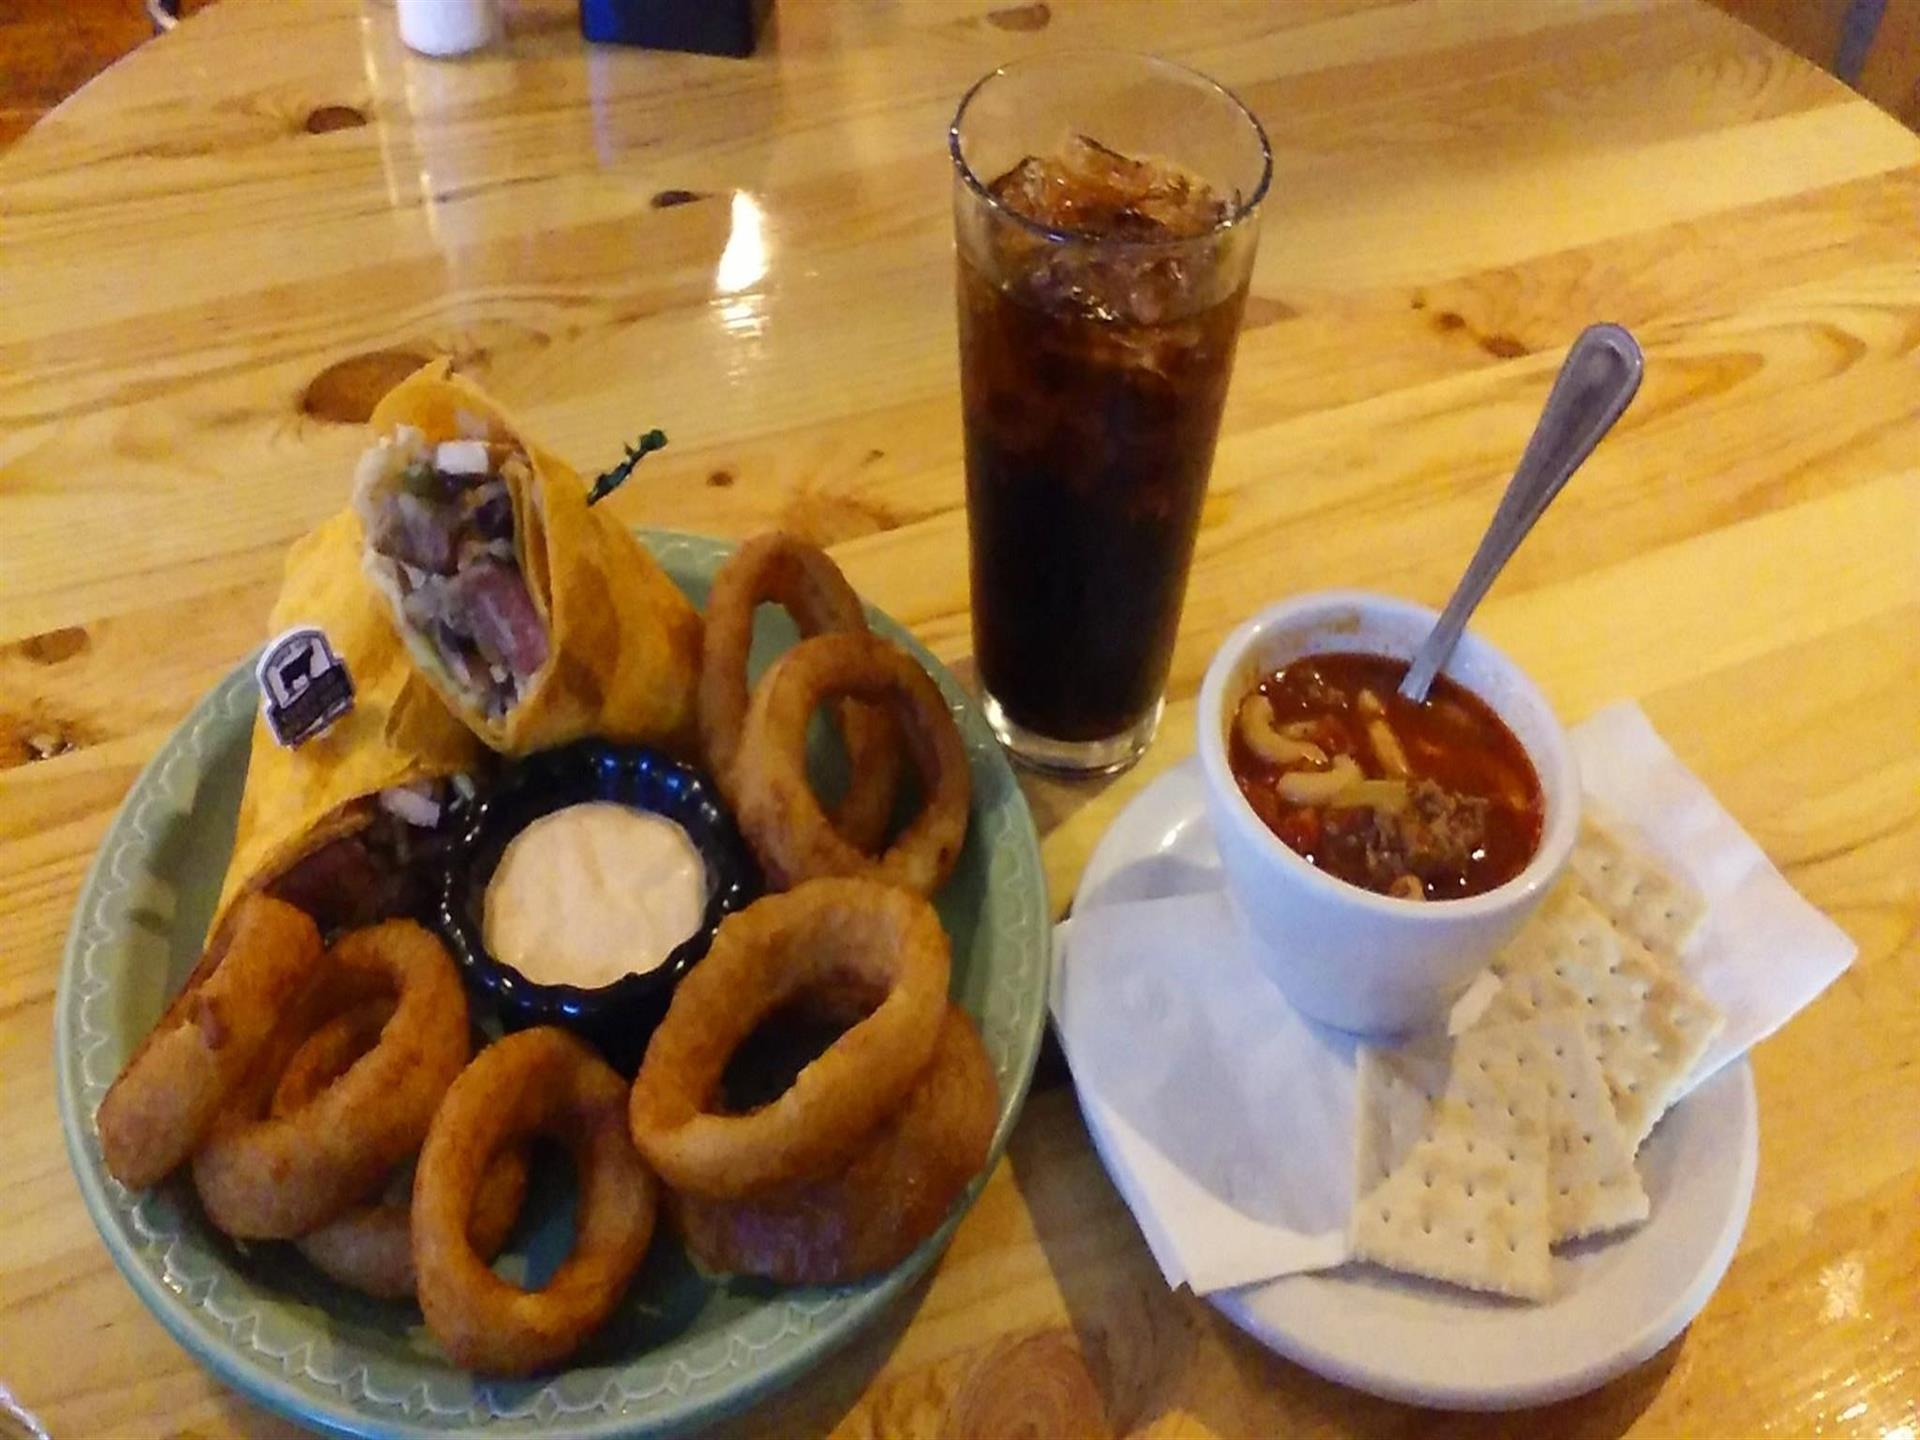 Onion rings and wraps on plate next to cup of soup with crackers and glass of soda on light-colored wood table.